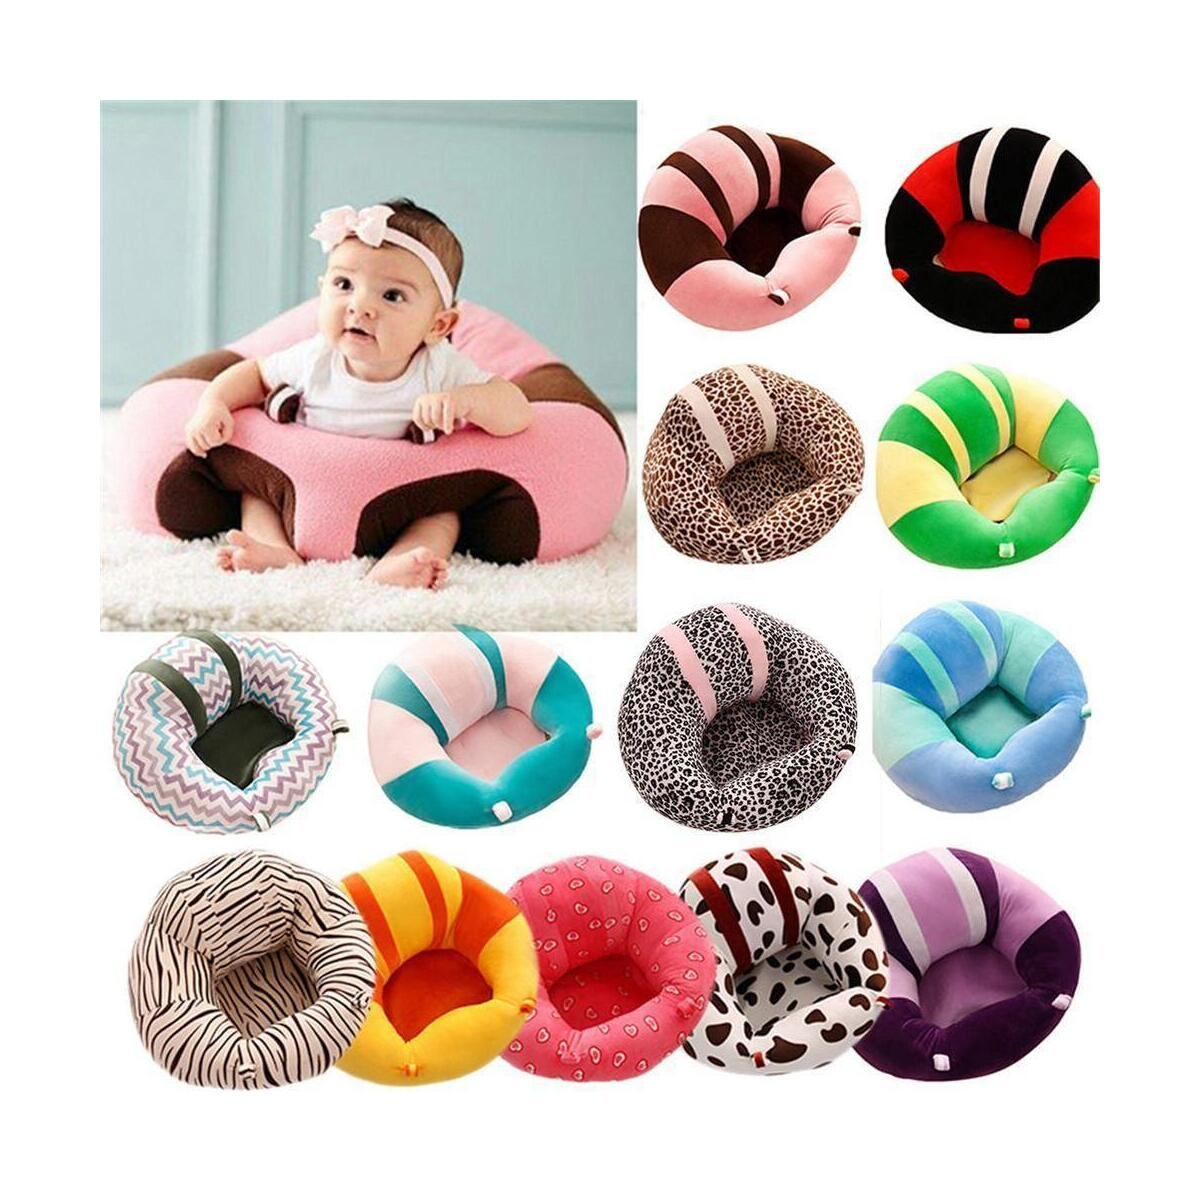 Kids Baby Support Seat Soft Chair Cushion Sofa Plush Pillow Bean Bag Sitting Toy